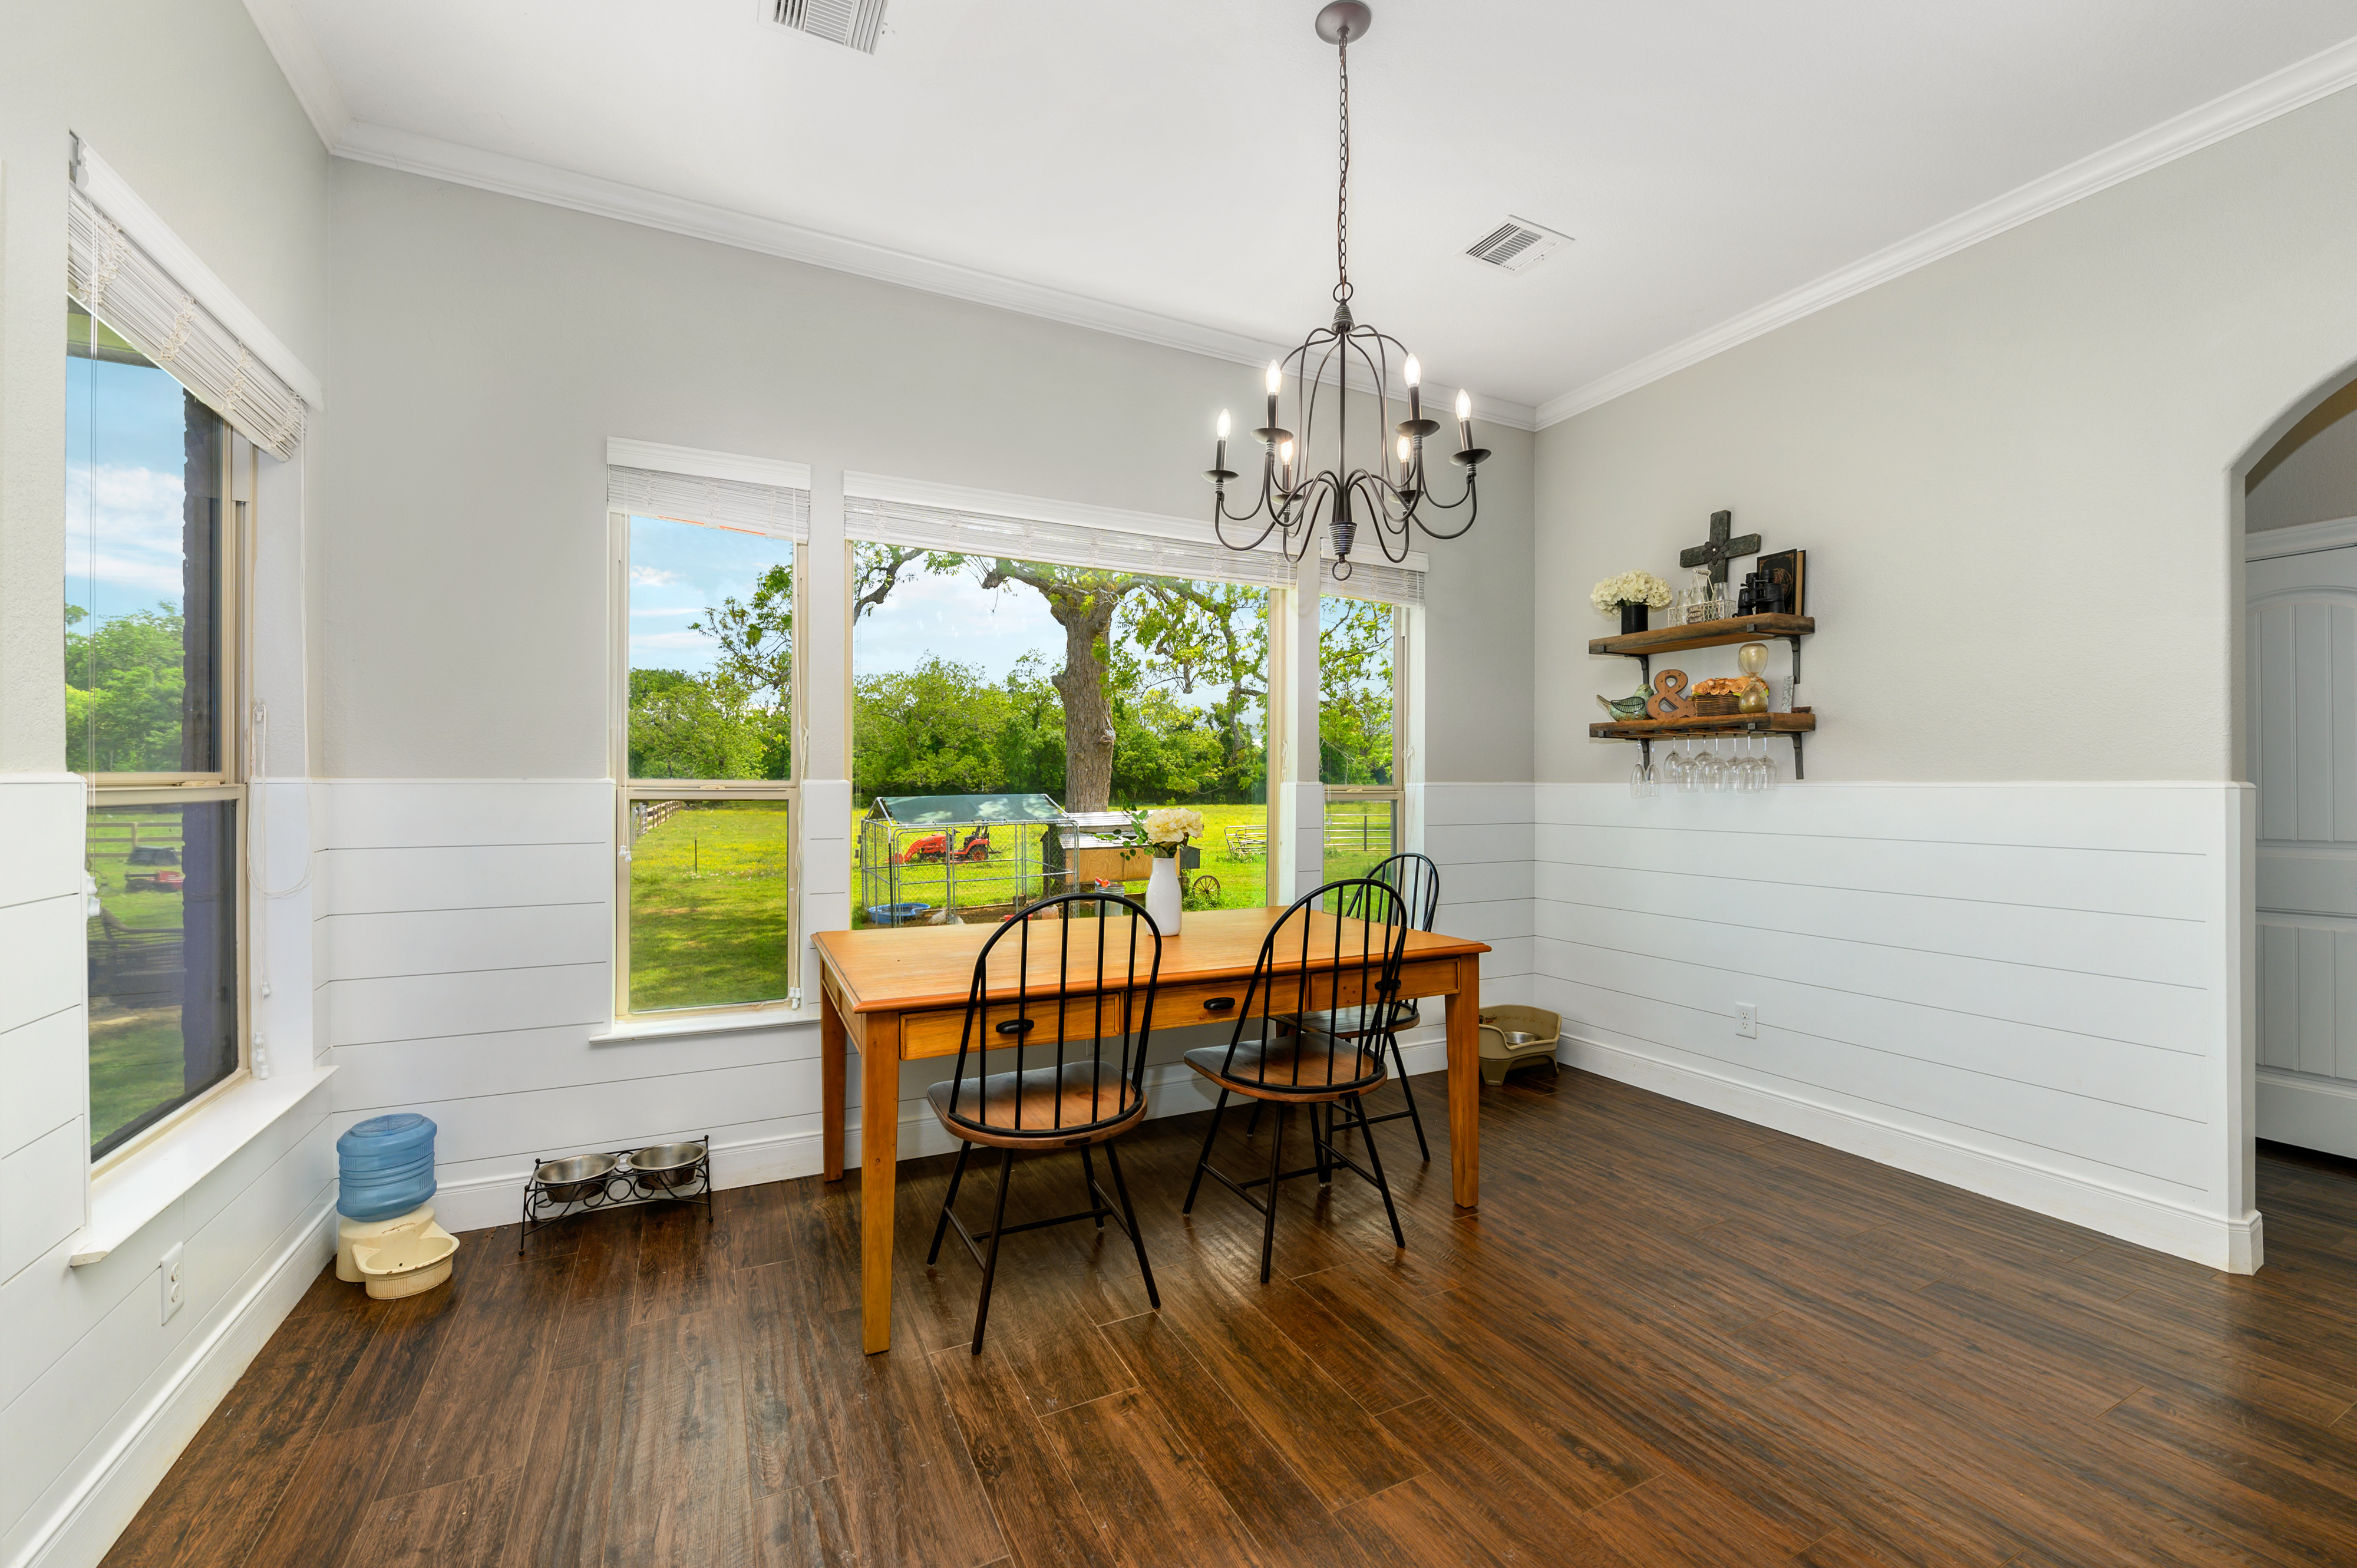 Custom Country Home with Acreage in Sealy - Image 24 of 46